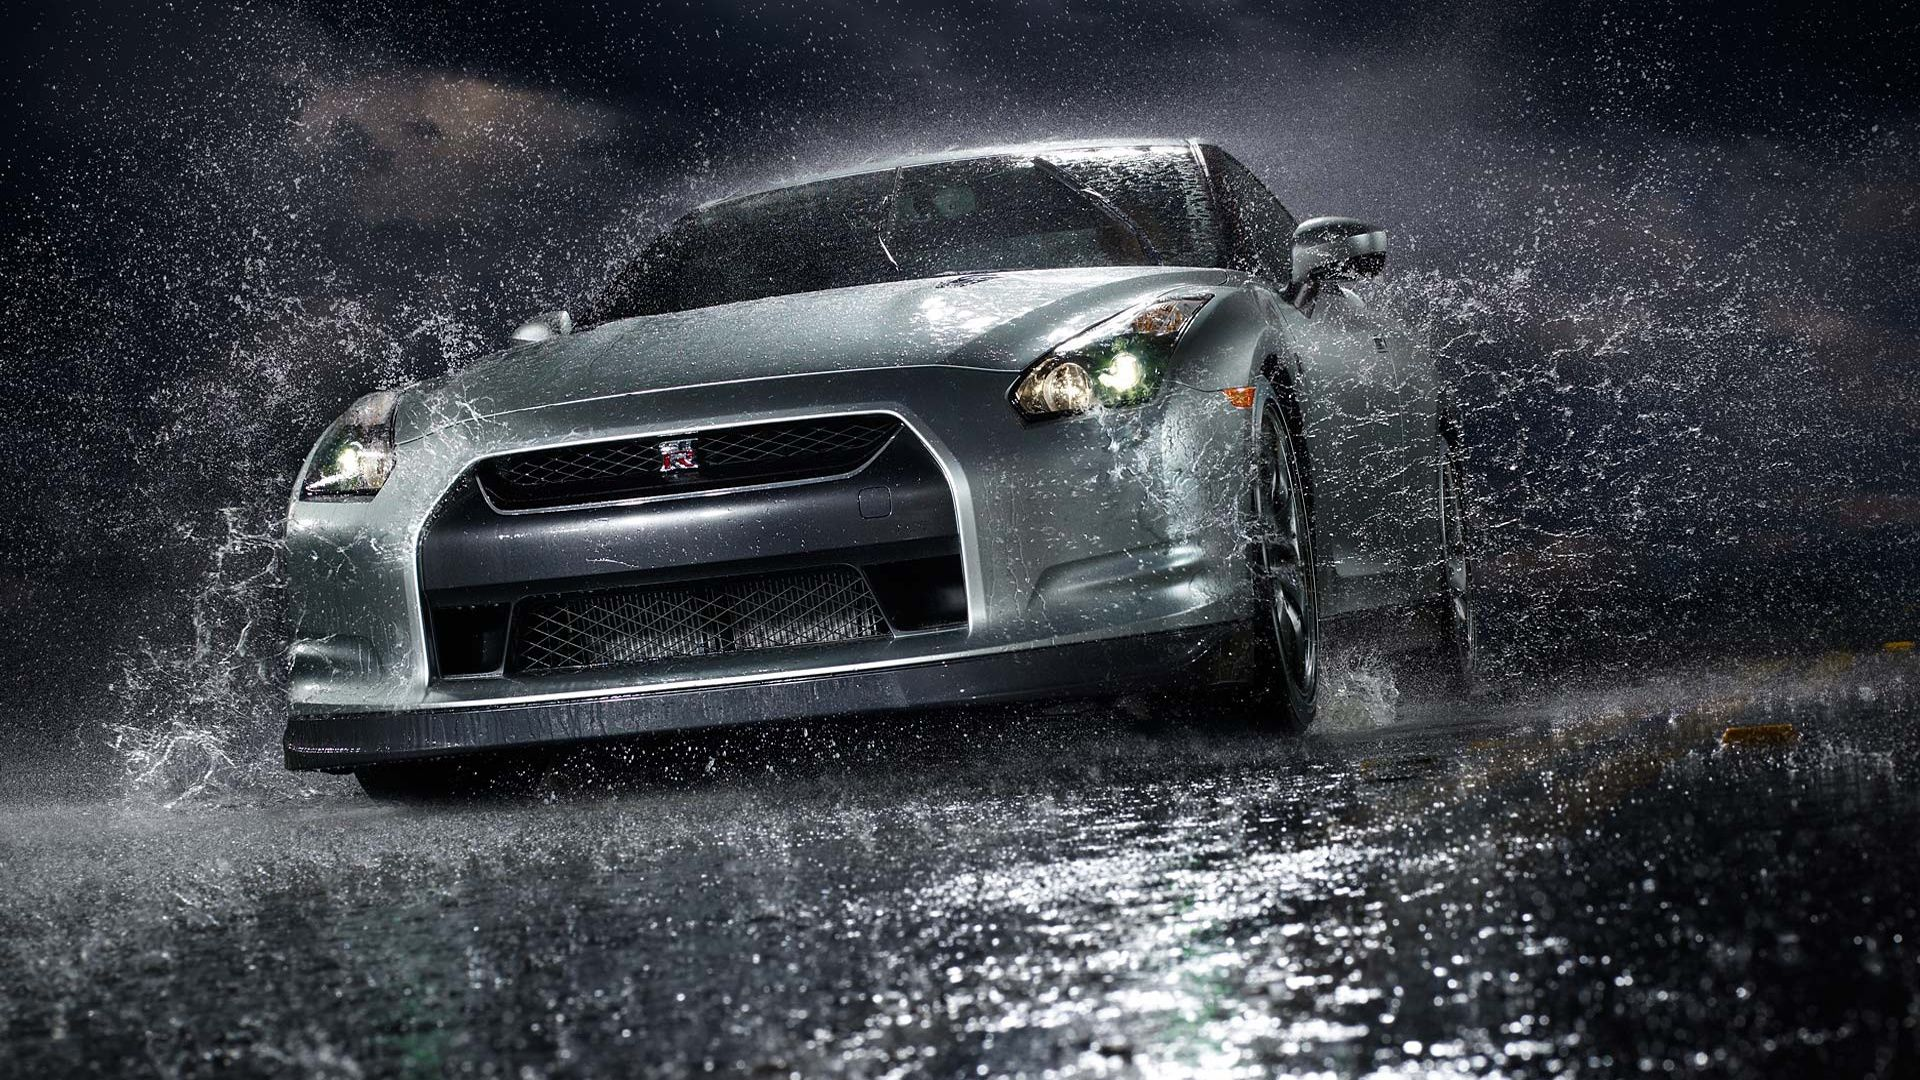 Gtr In The Rain Computer Background Autos, Automoviles